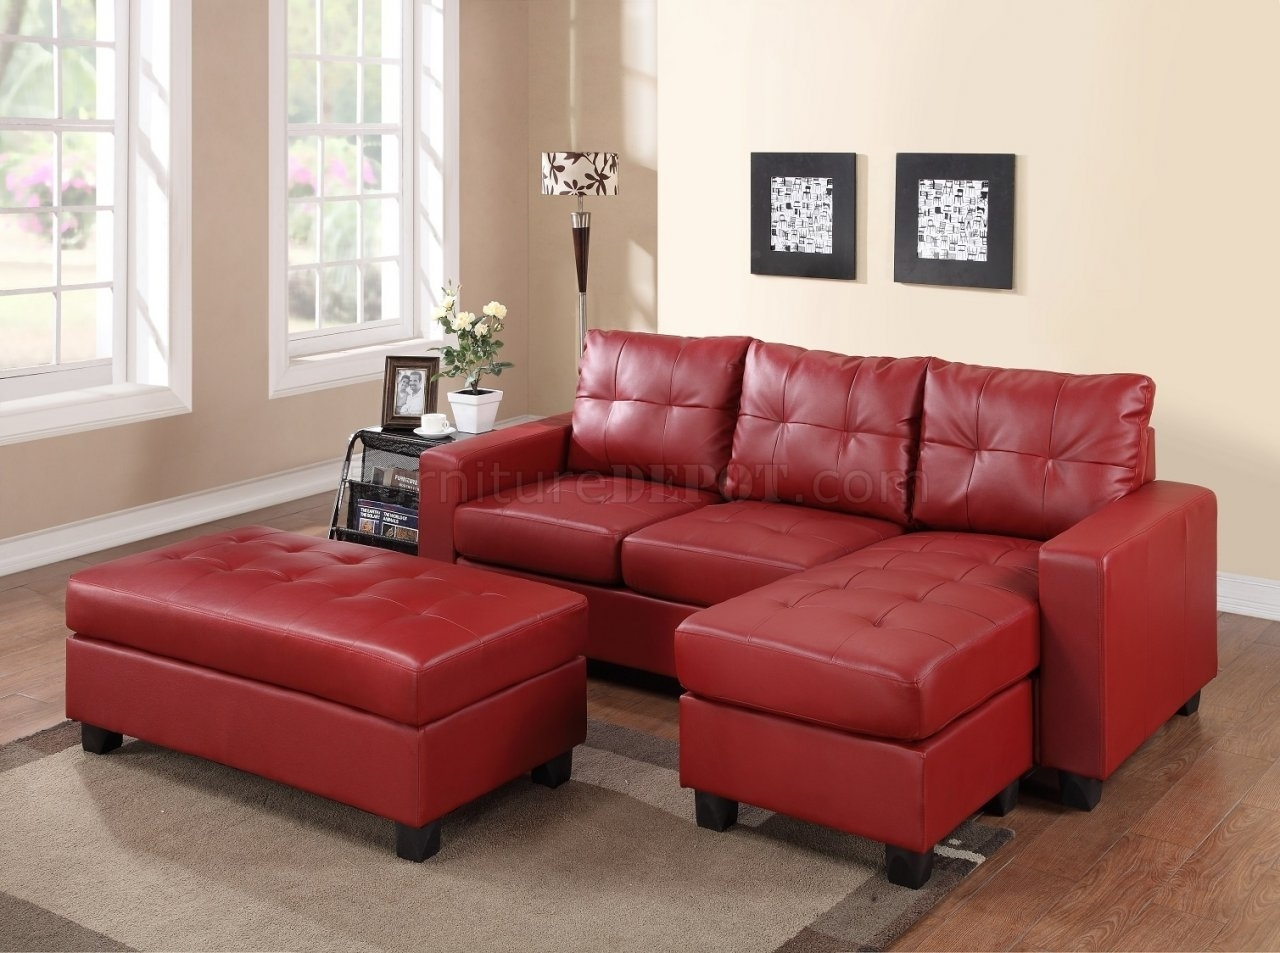 2511 Sectional Sofa Set In Red Bonded Leather Match Pu With Red Leather Sectional Couches (View 9 of 10)